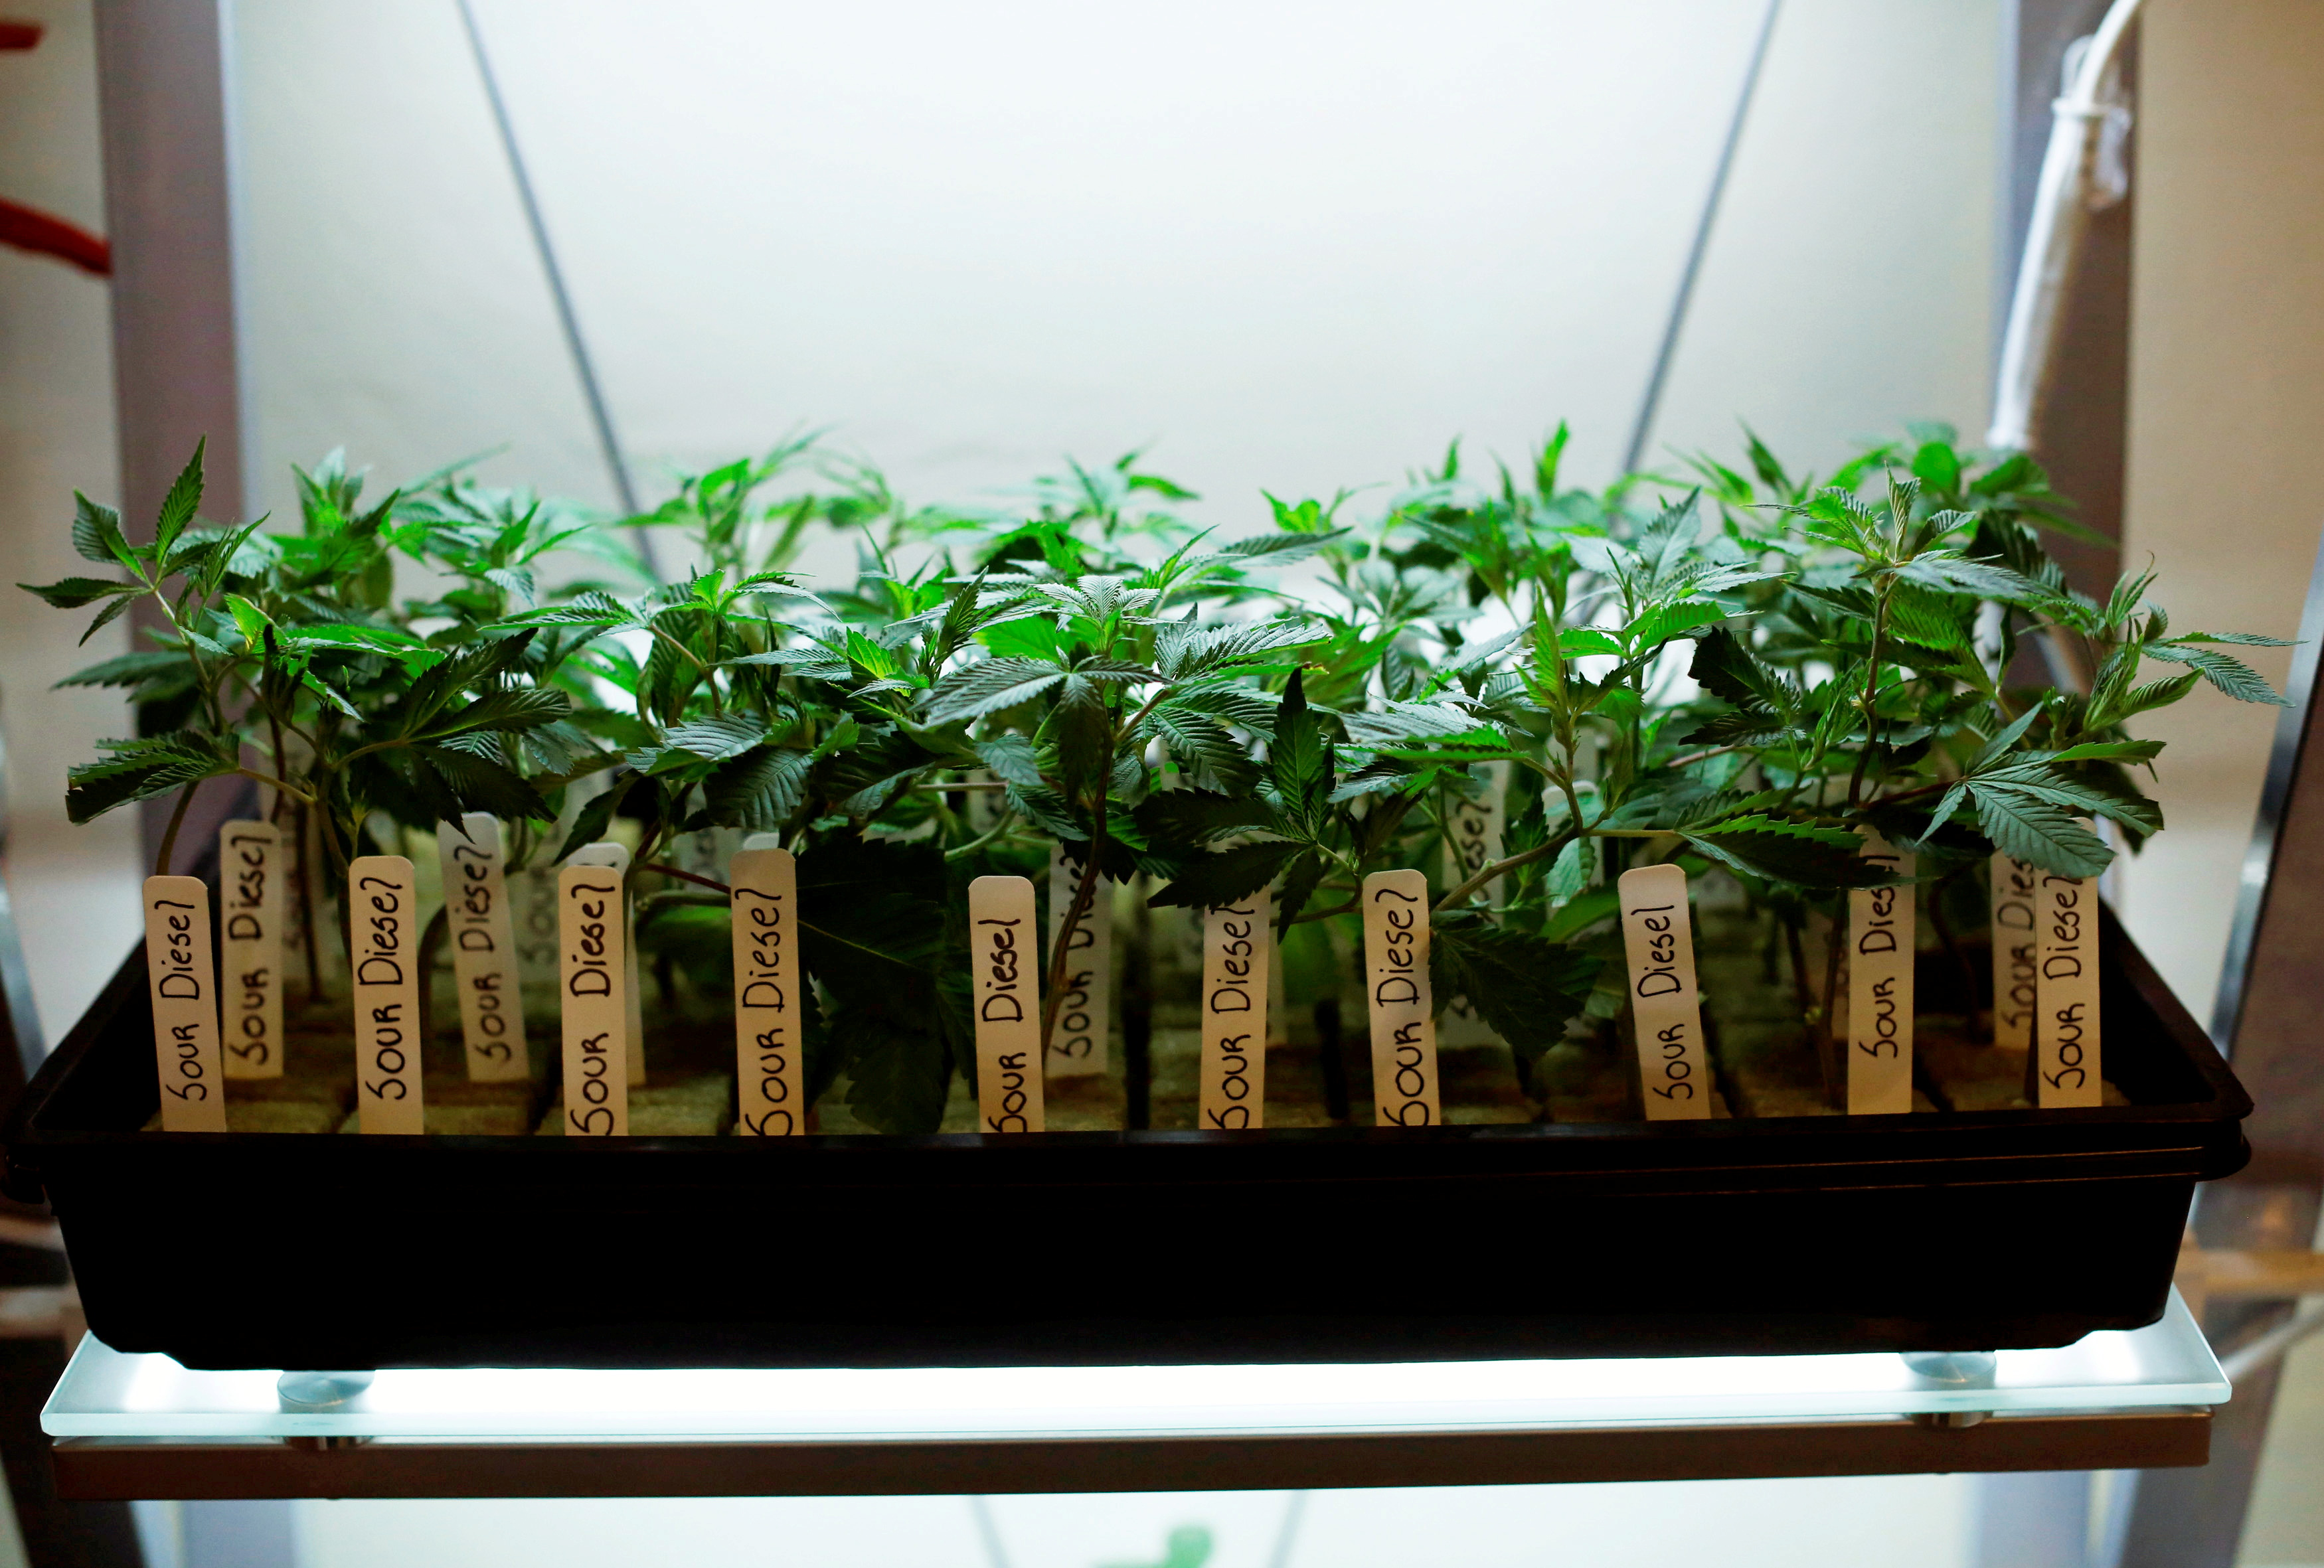 Clones of medicinal marijuana plants are pictured at Los Angeles Patients & Caregivers Group dispensary in West Hollywood, California U.S., October 18, 2016. Picture taken October 18, 2016.  REUTERS/Mario Anzuoni/File Photo